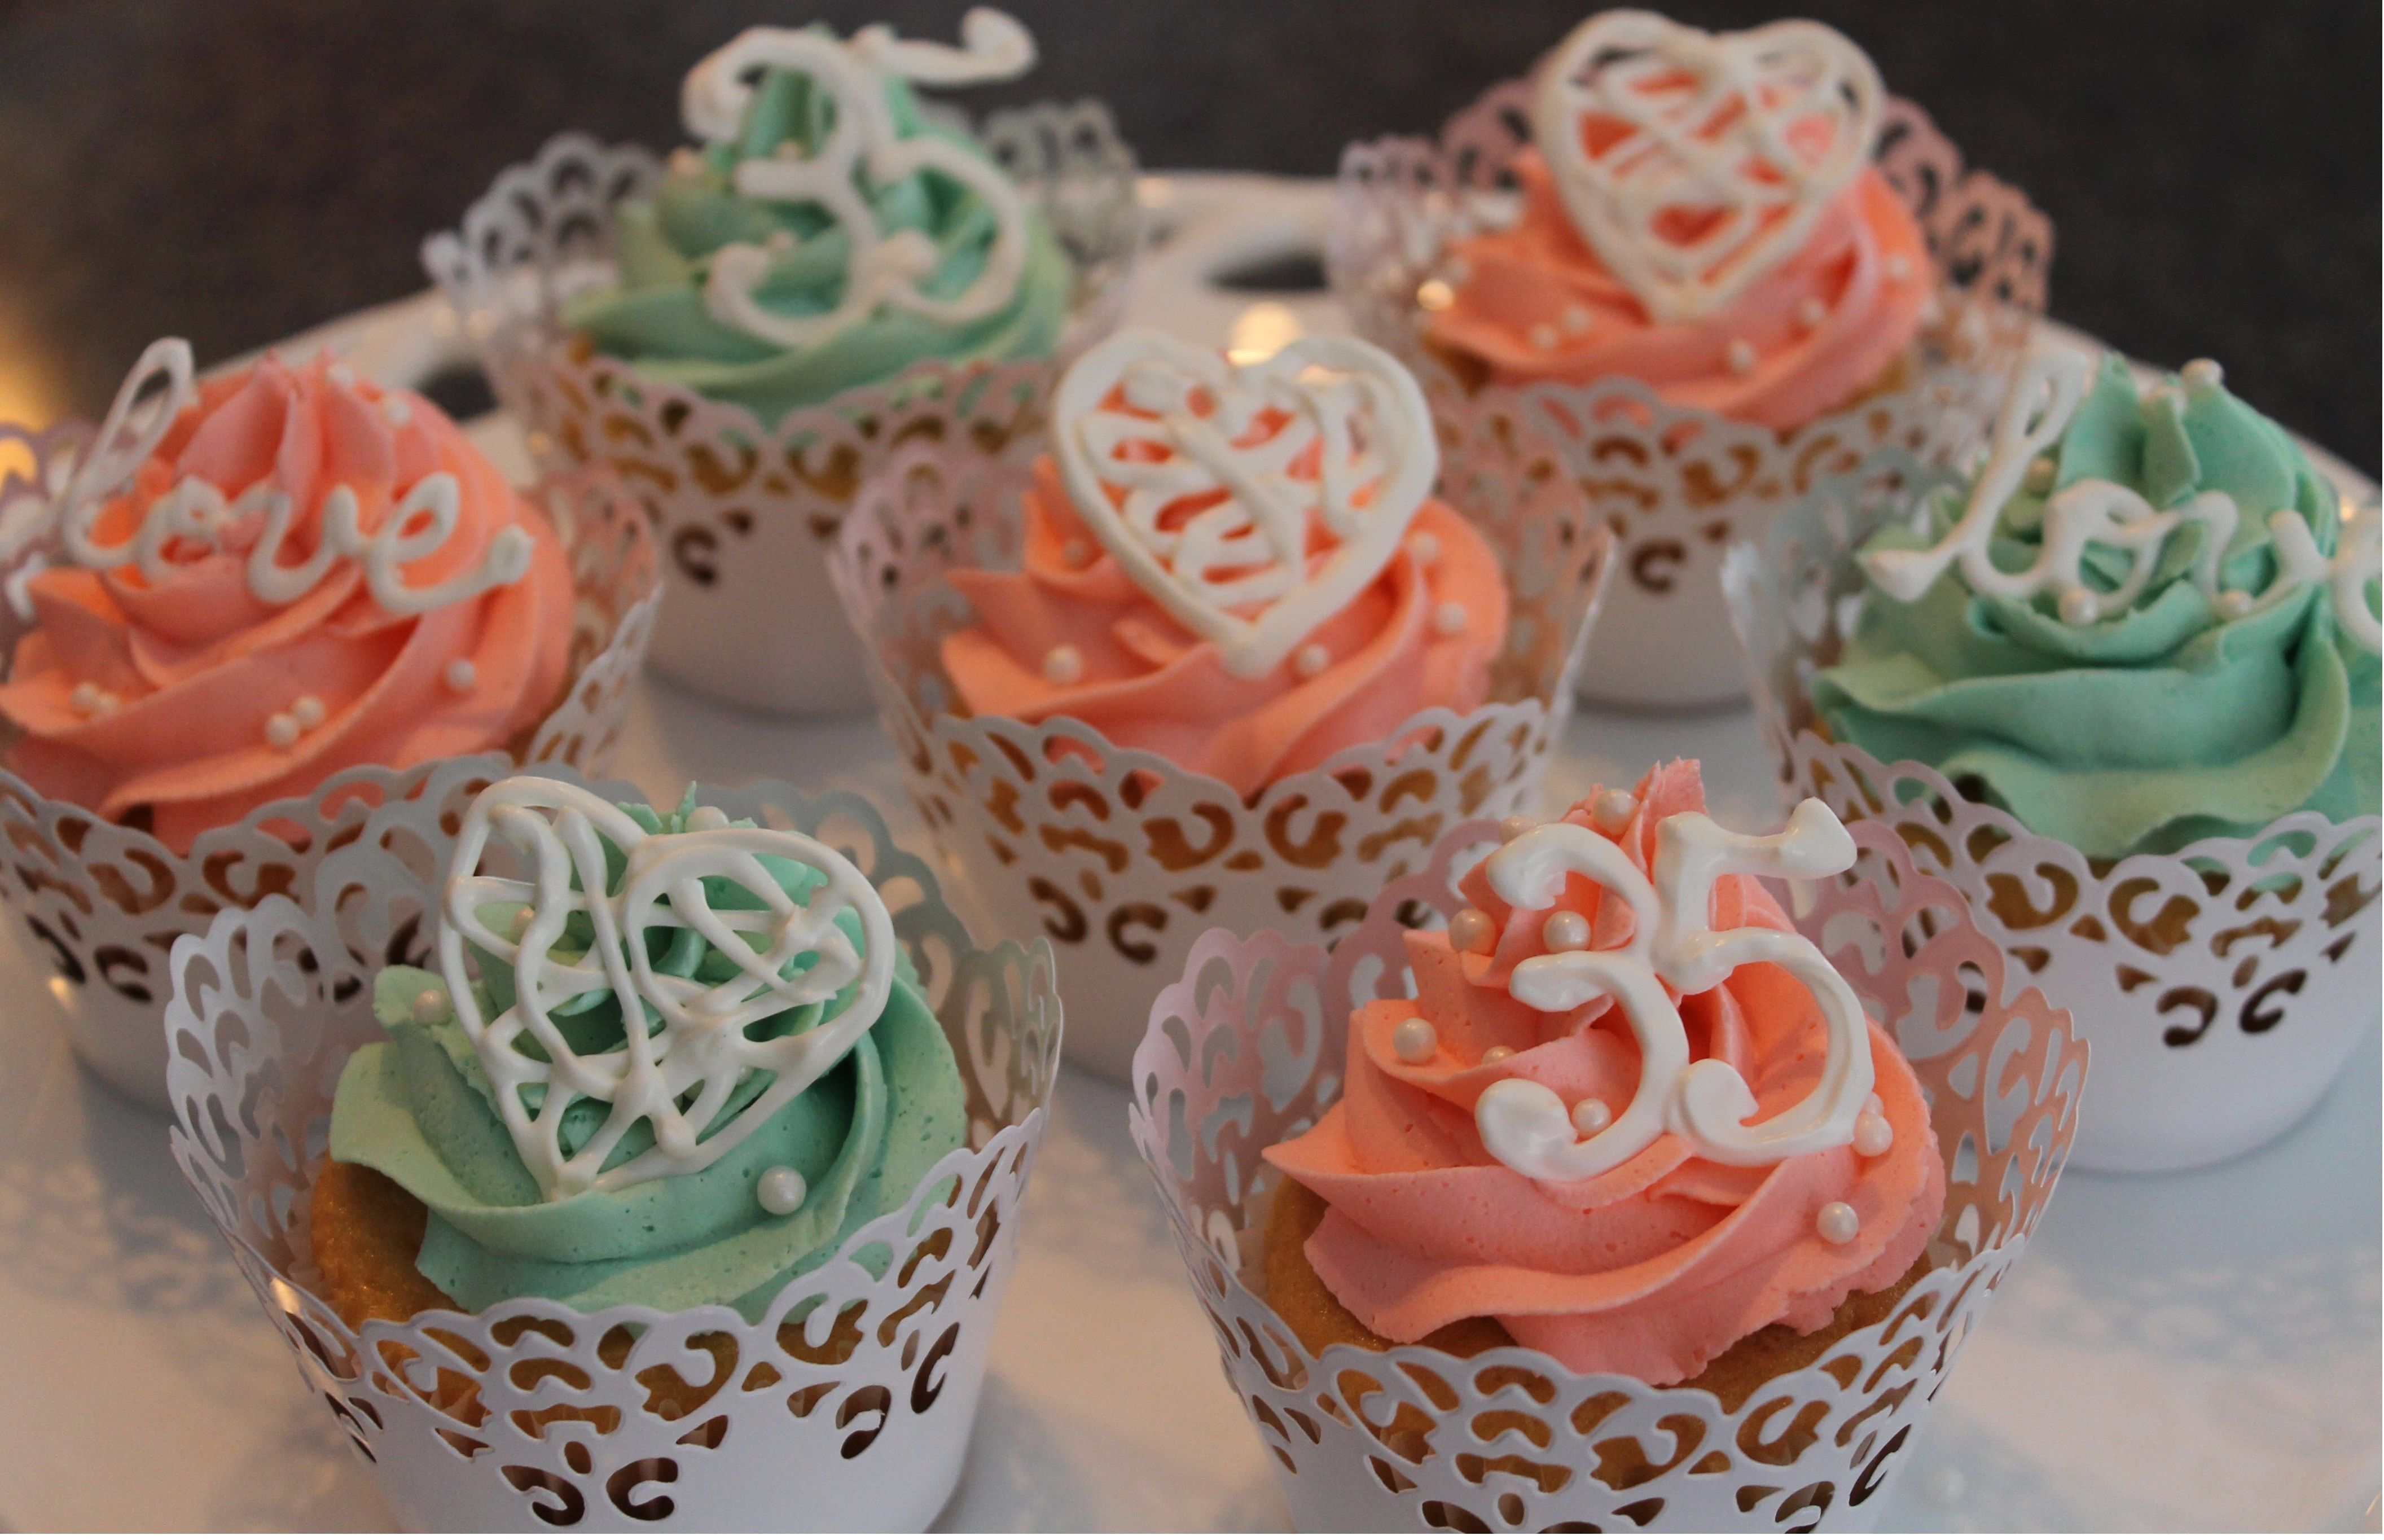 35th Wedding Anniversary Gifts For Parents: 35th Anniversary Cupcakes...traditional And Modern Coral